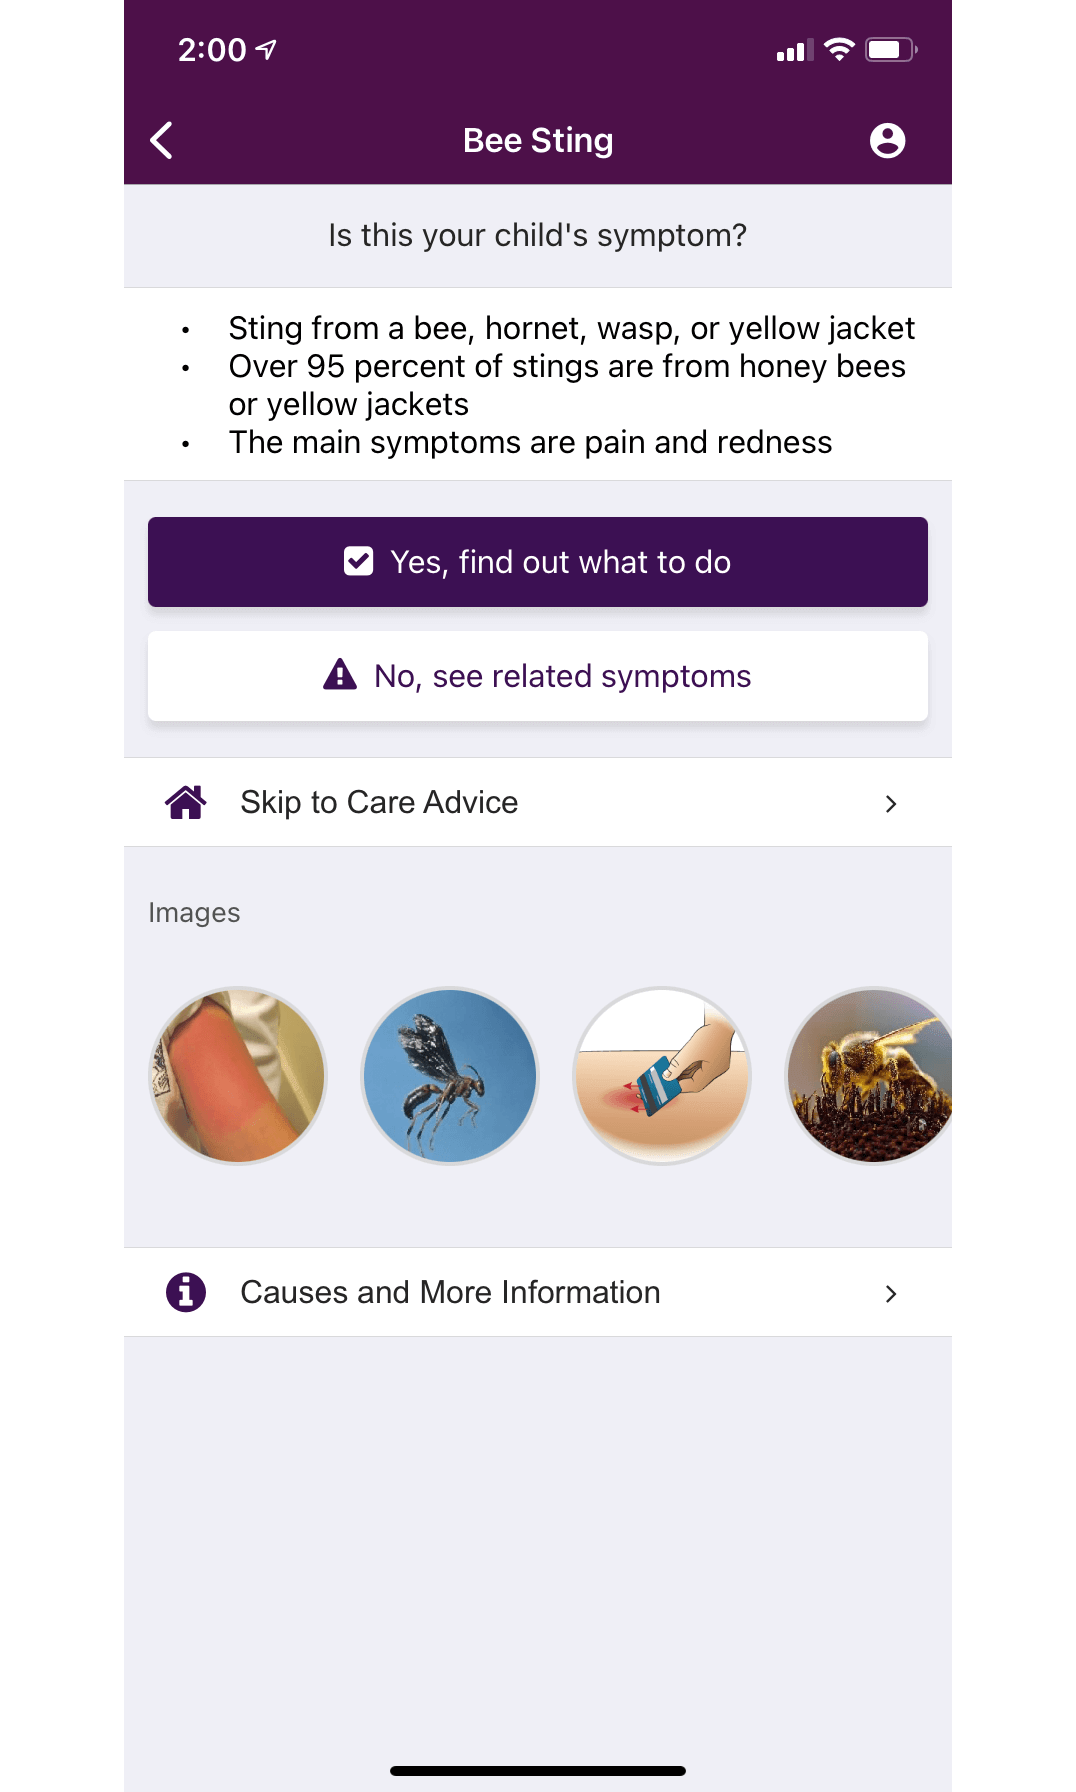 ChildrensPGH Bee Sting Symptoms